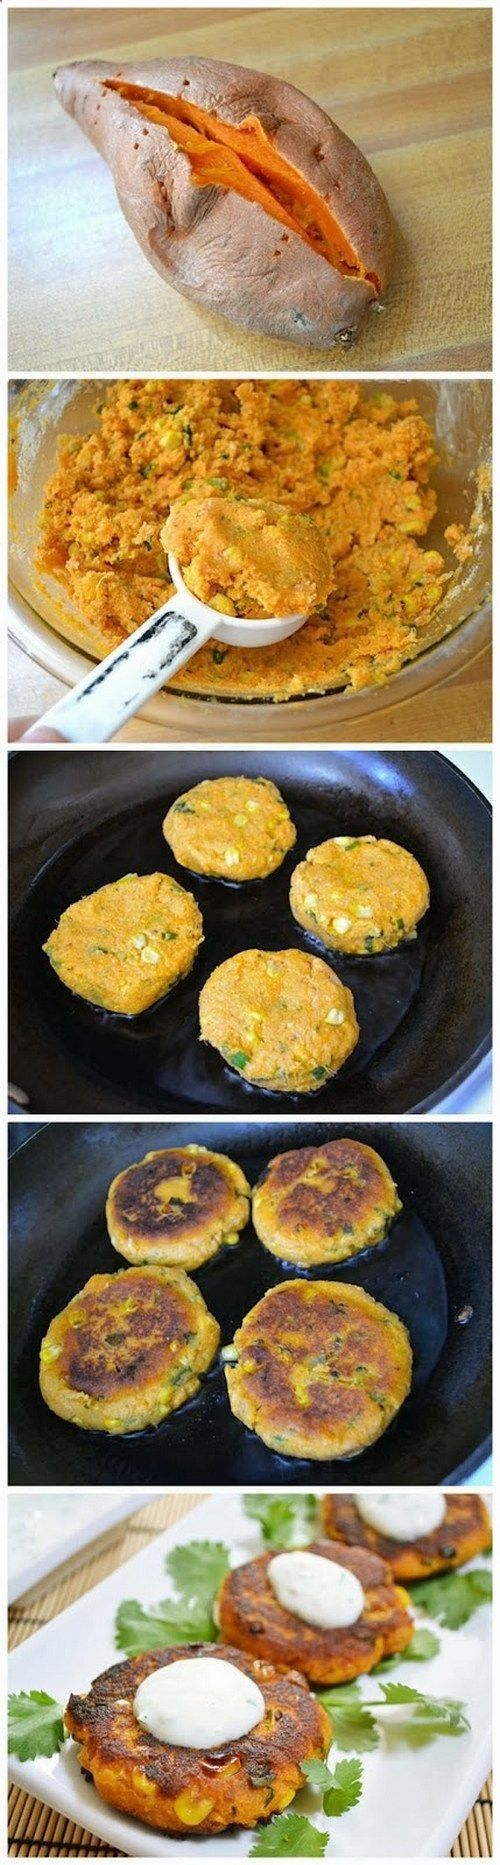 Sweet Potato Corn Cakes with Garlic Dipping Sauce. Played around with it a bit. I think i want to try blending the sweet potatoes so it holds better.